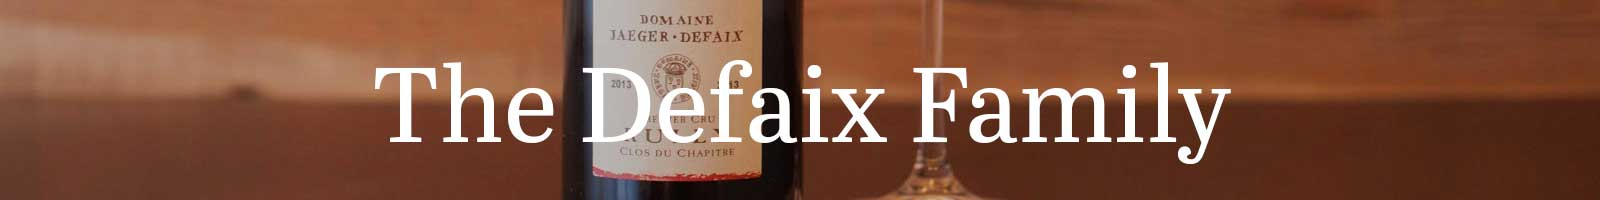 Essential Winemaker of France: The Defaix Family